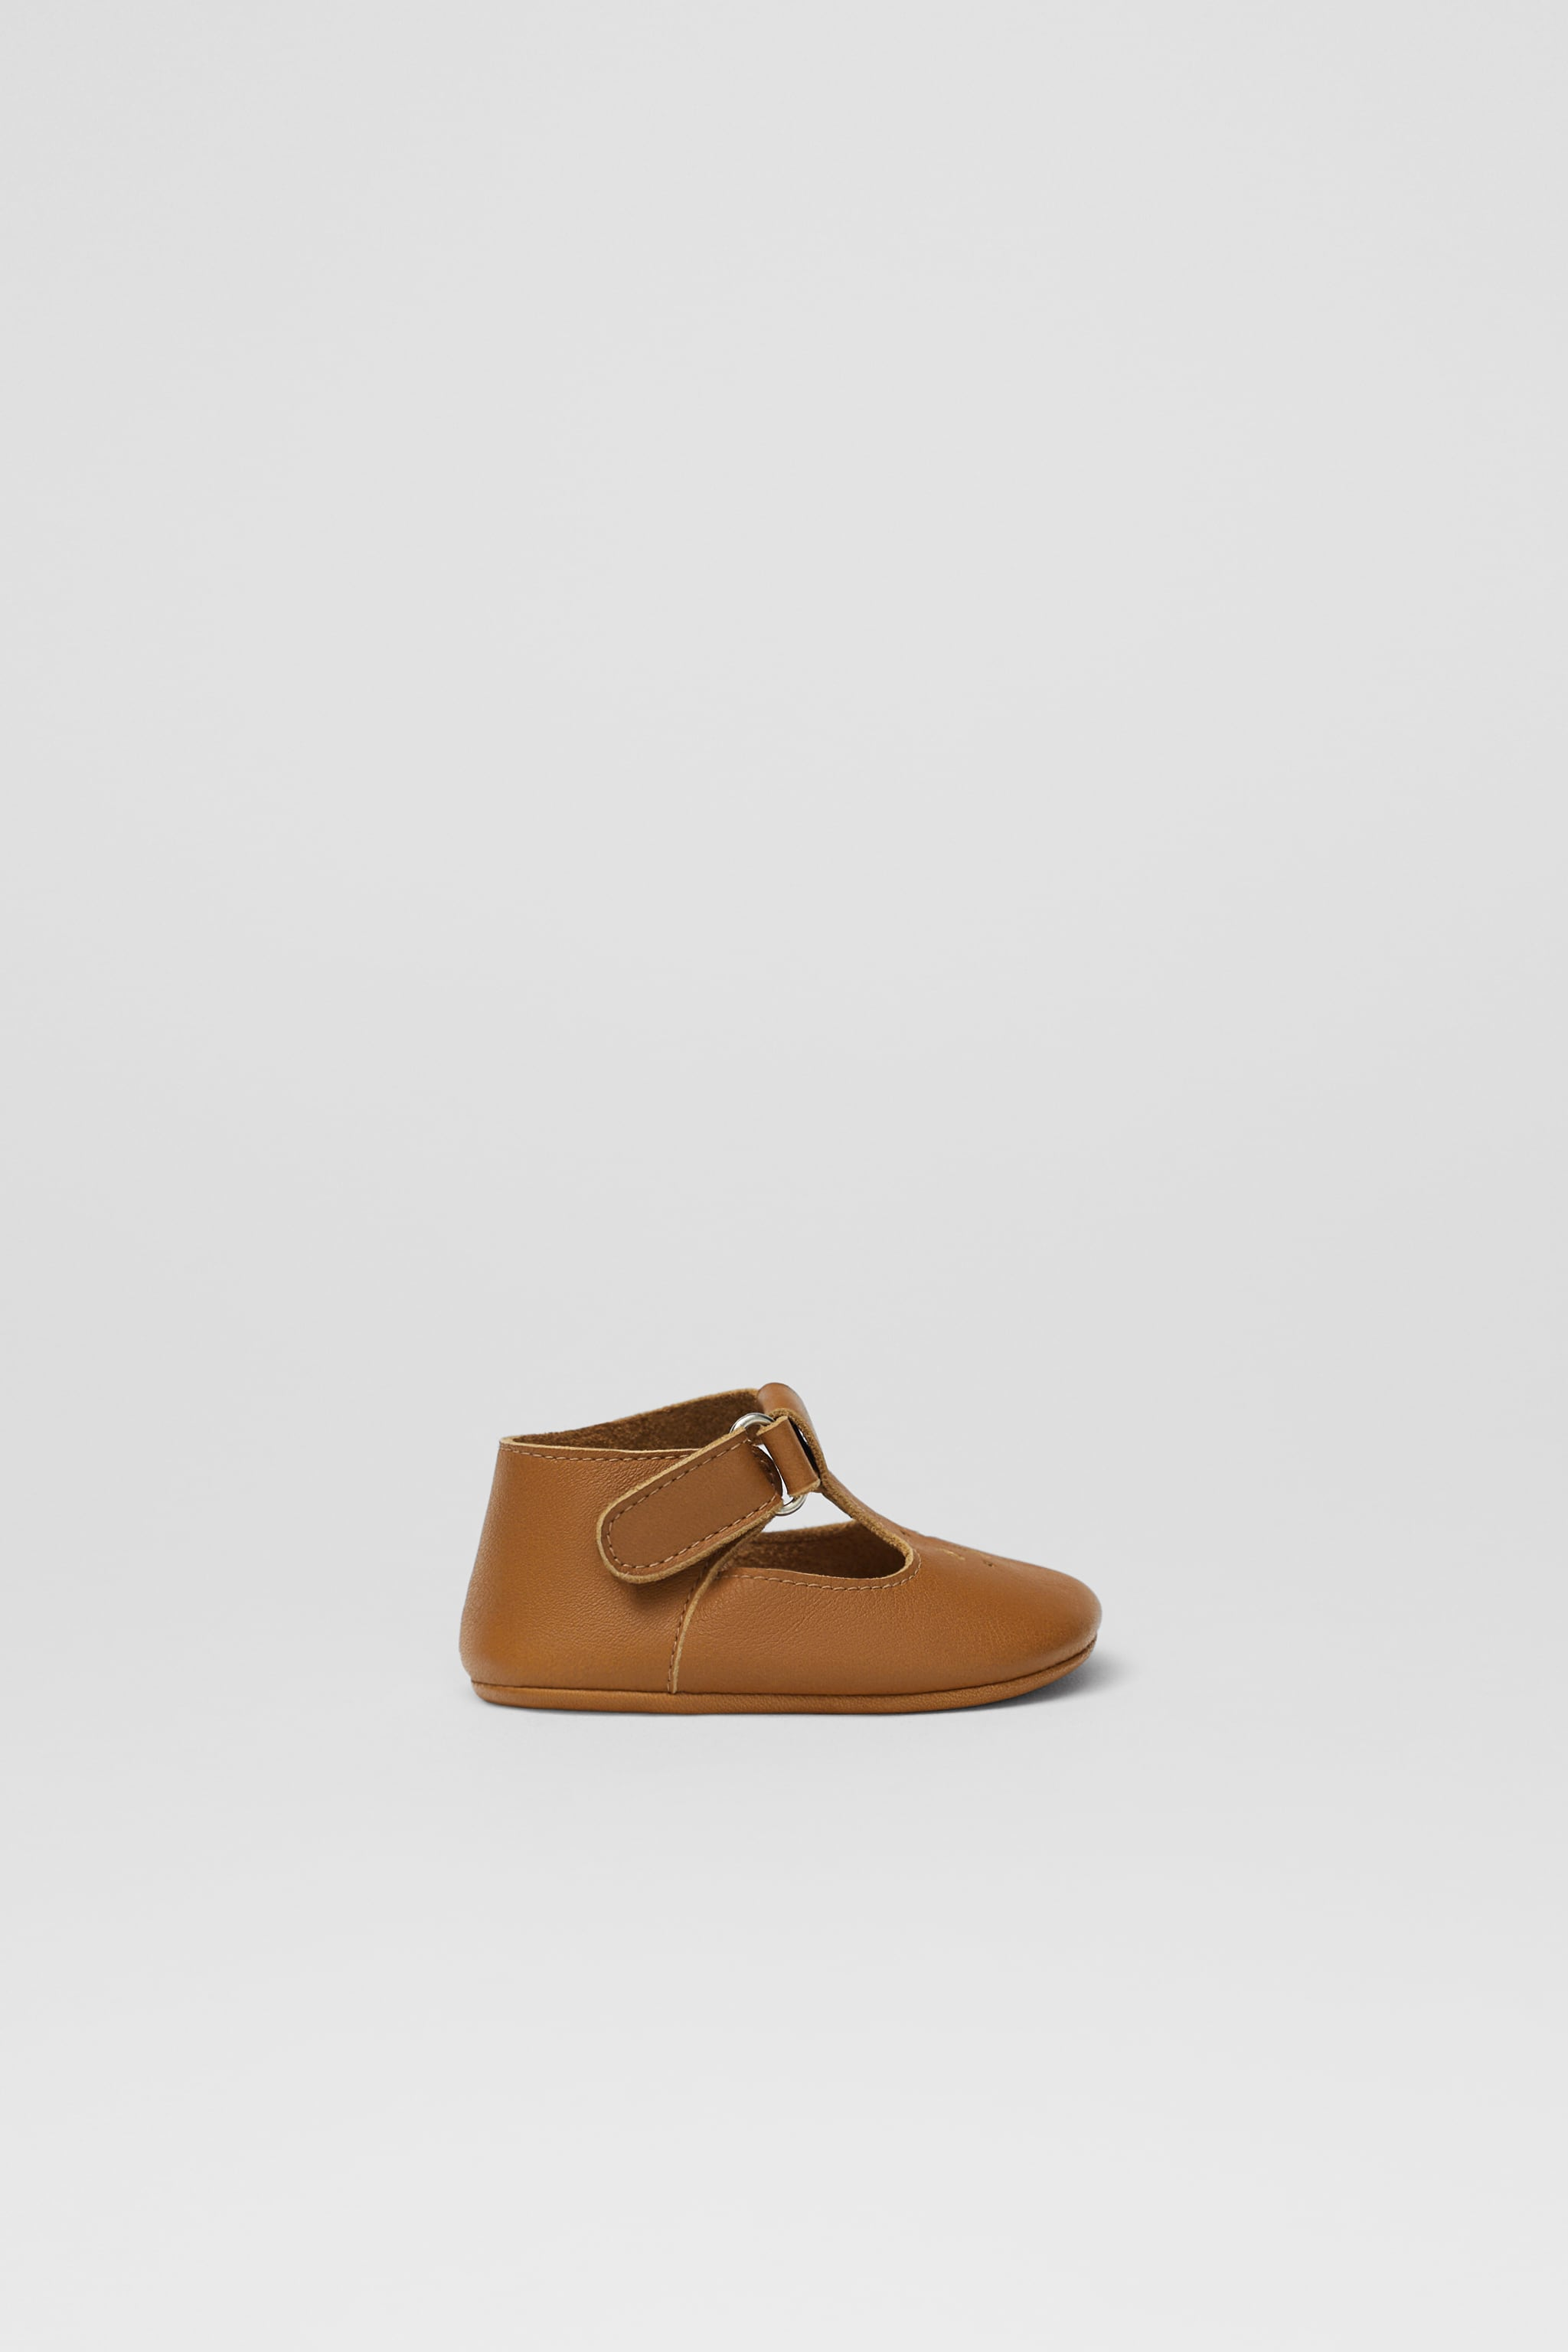 Zara T-STRAP LEATHER BOOTIES